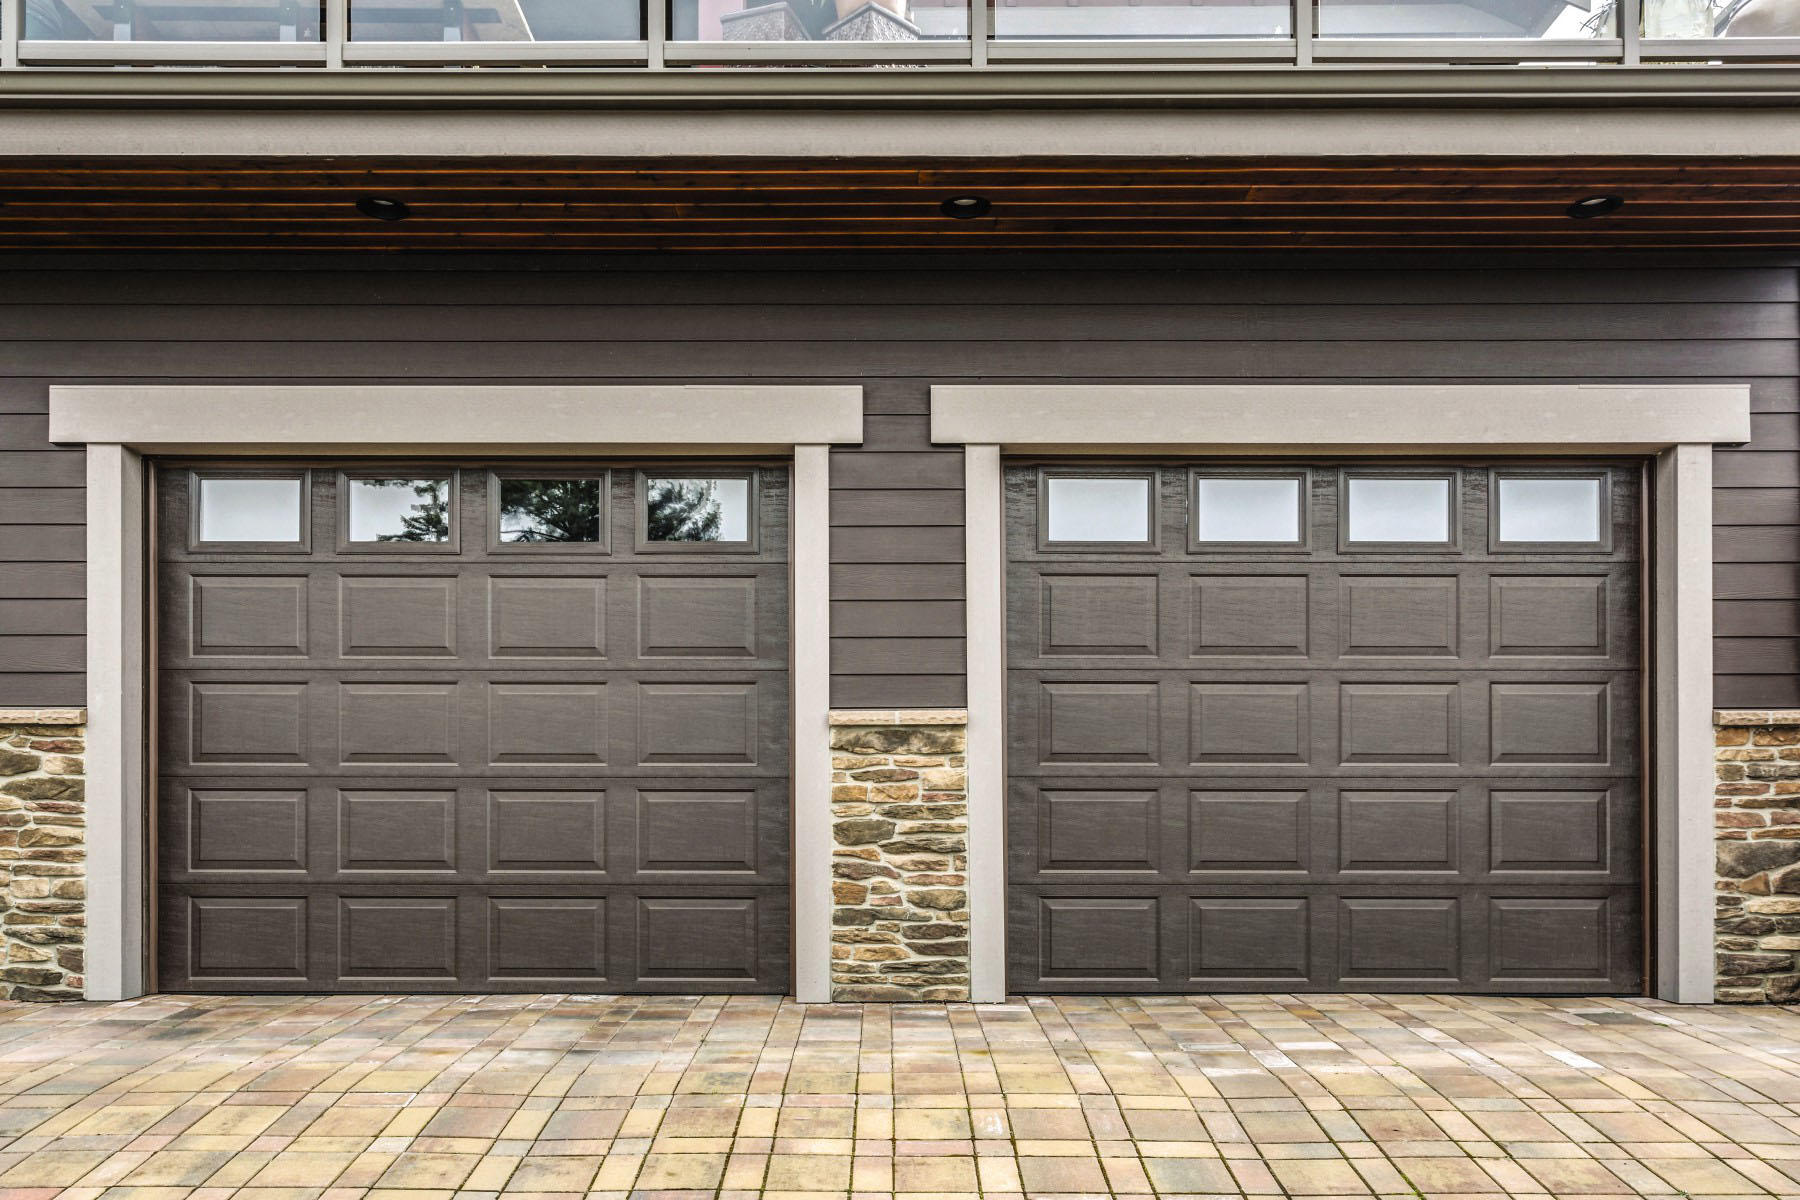 Repair Or Replace? How To Determine When Your Garage Door Needs To Go